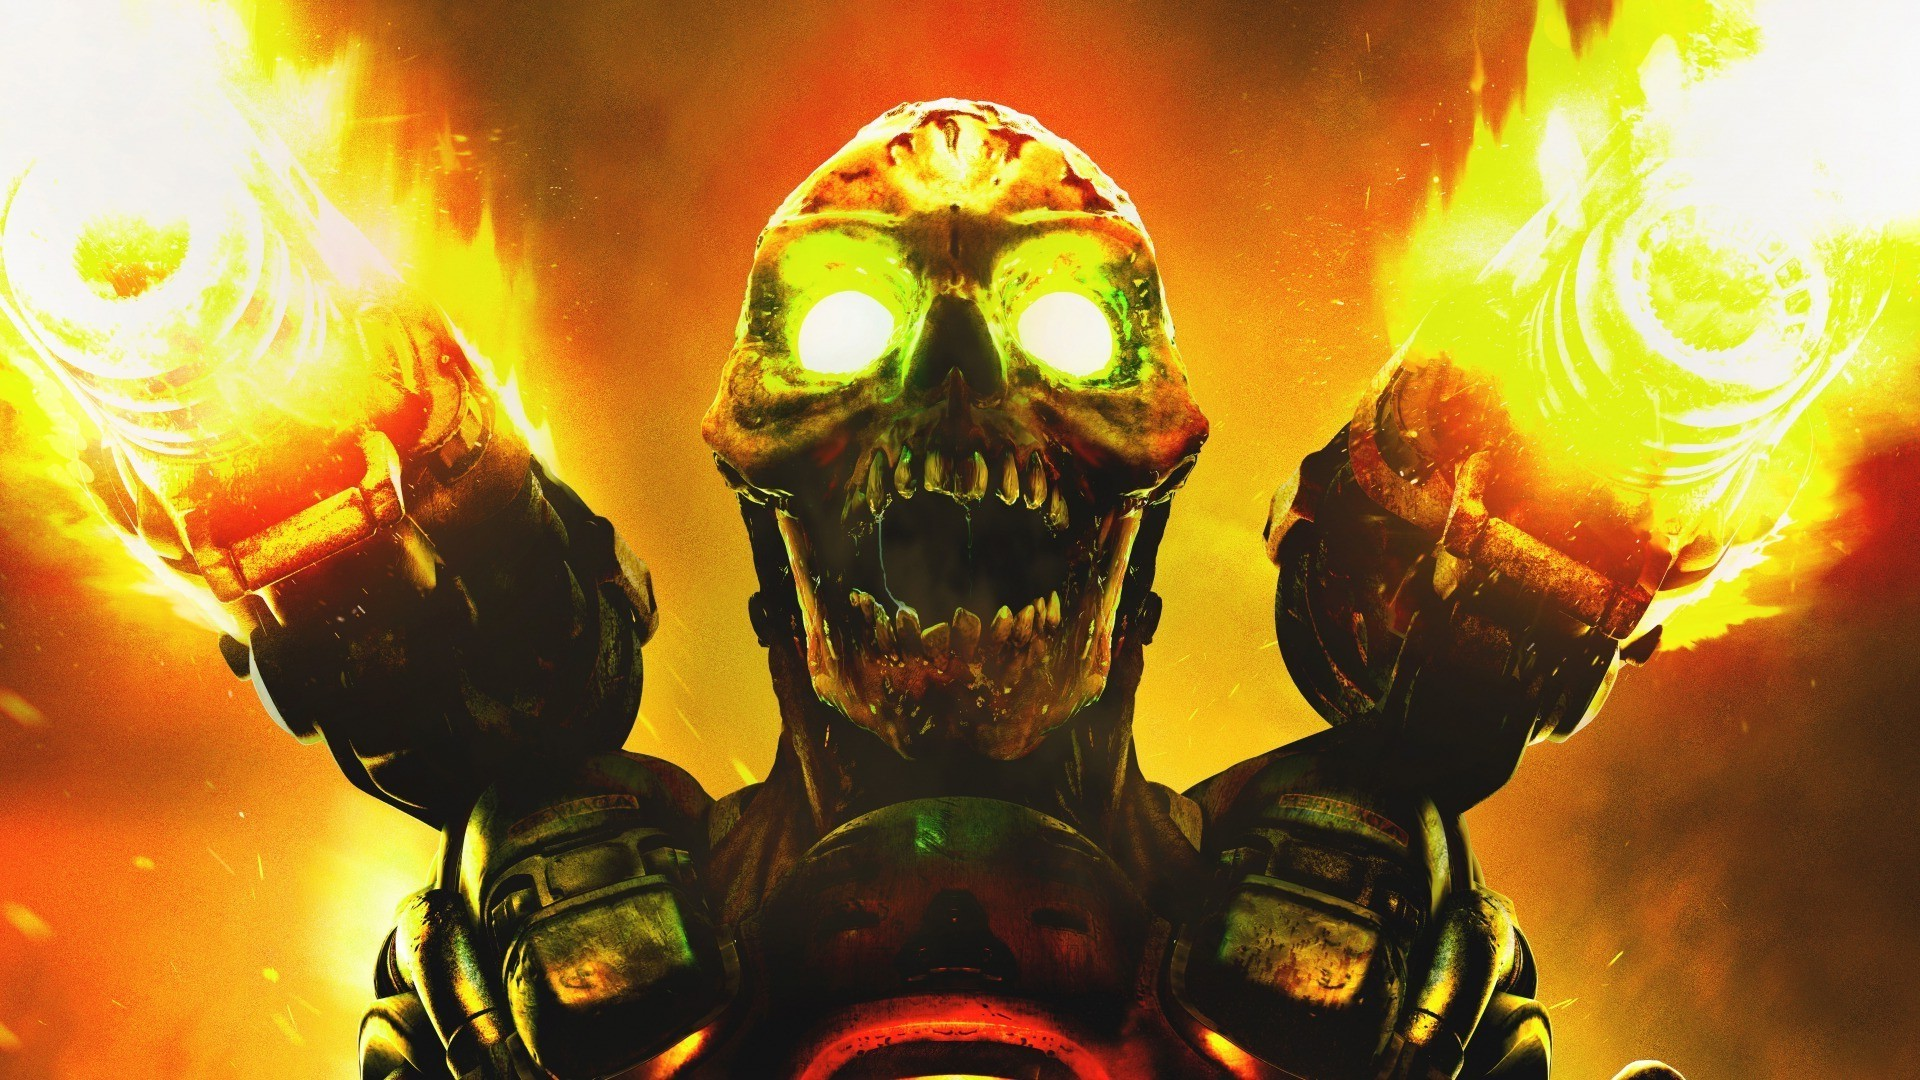 Res: 1920x1080, Doom 4, Id Software, Bethesda Softworks, Video Games Wallpapers HD /  Desktop and Mobile Backgrounds